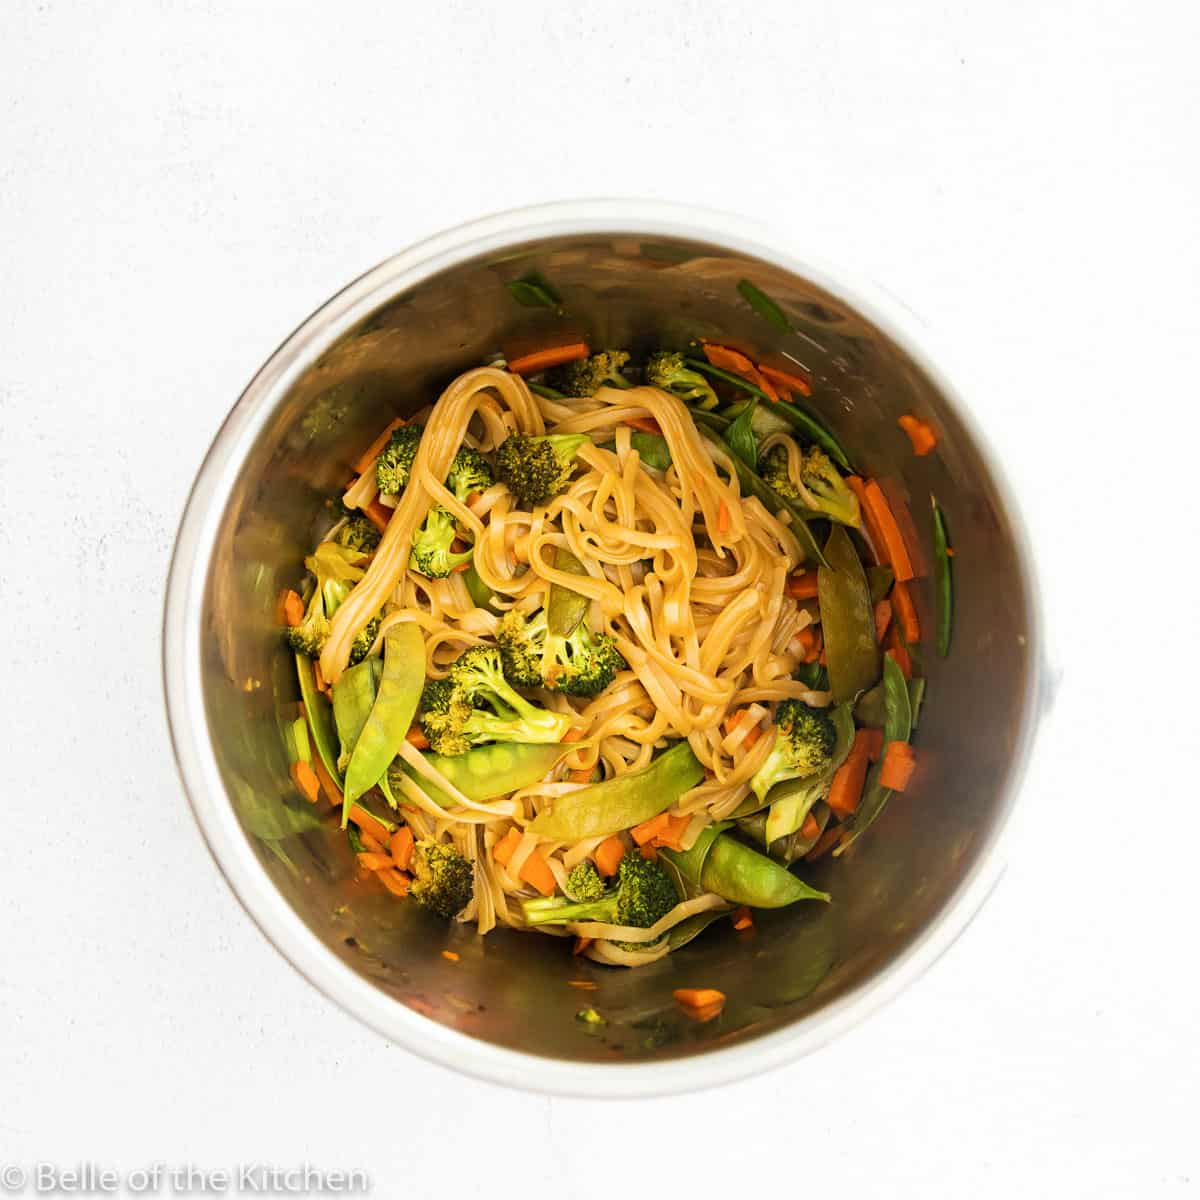 instant pot with noodles and vegetables